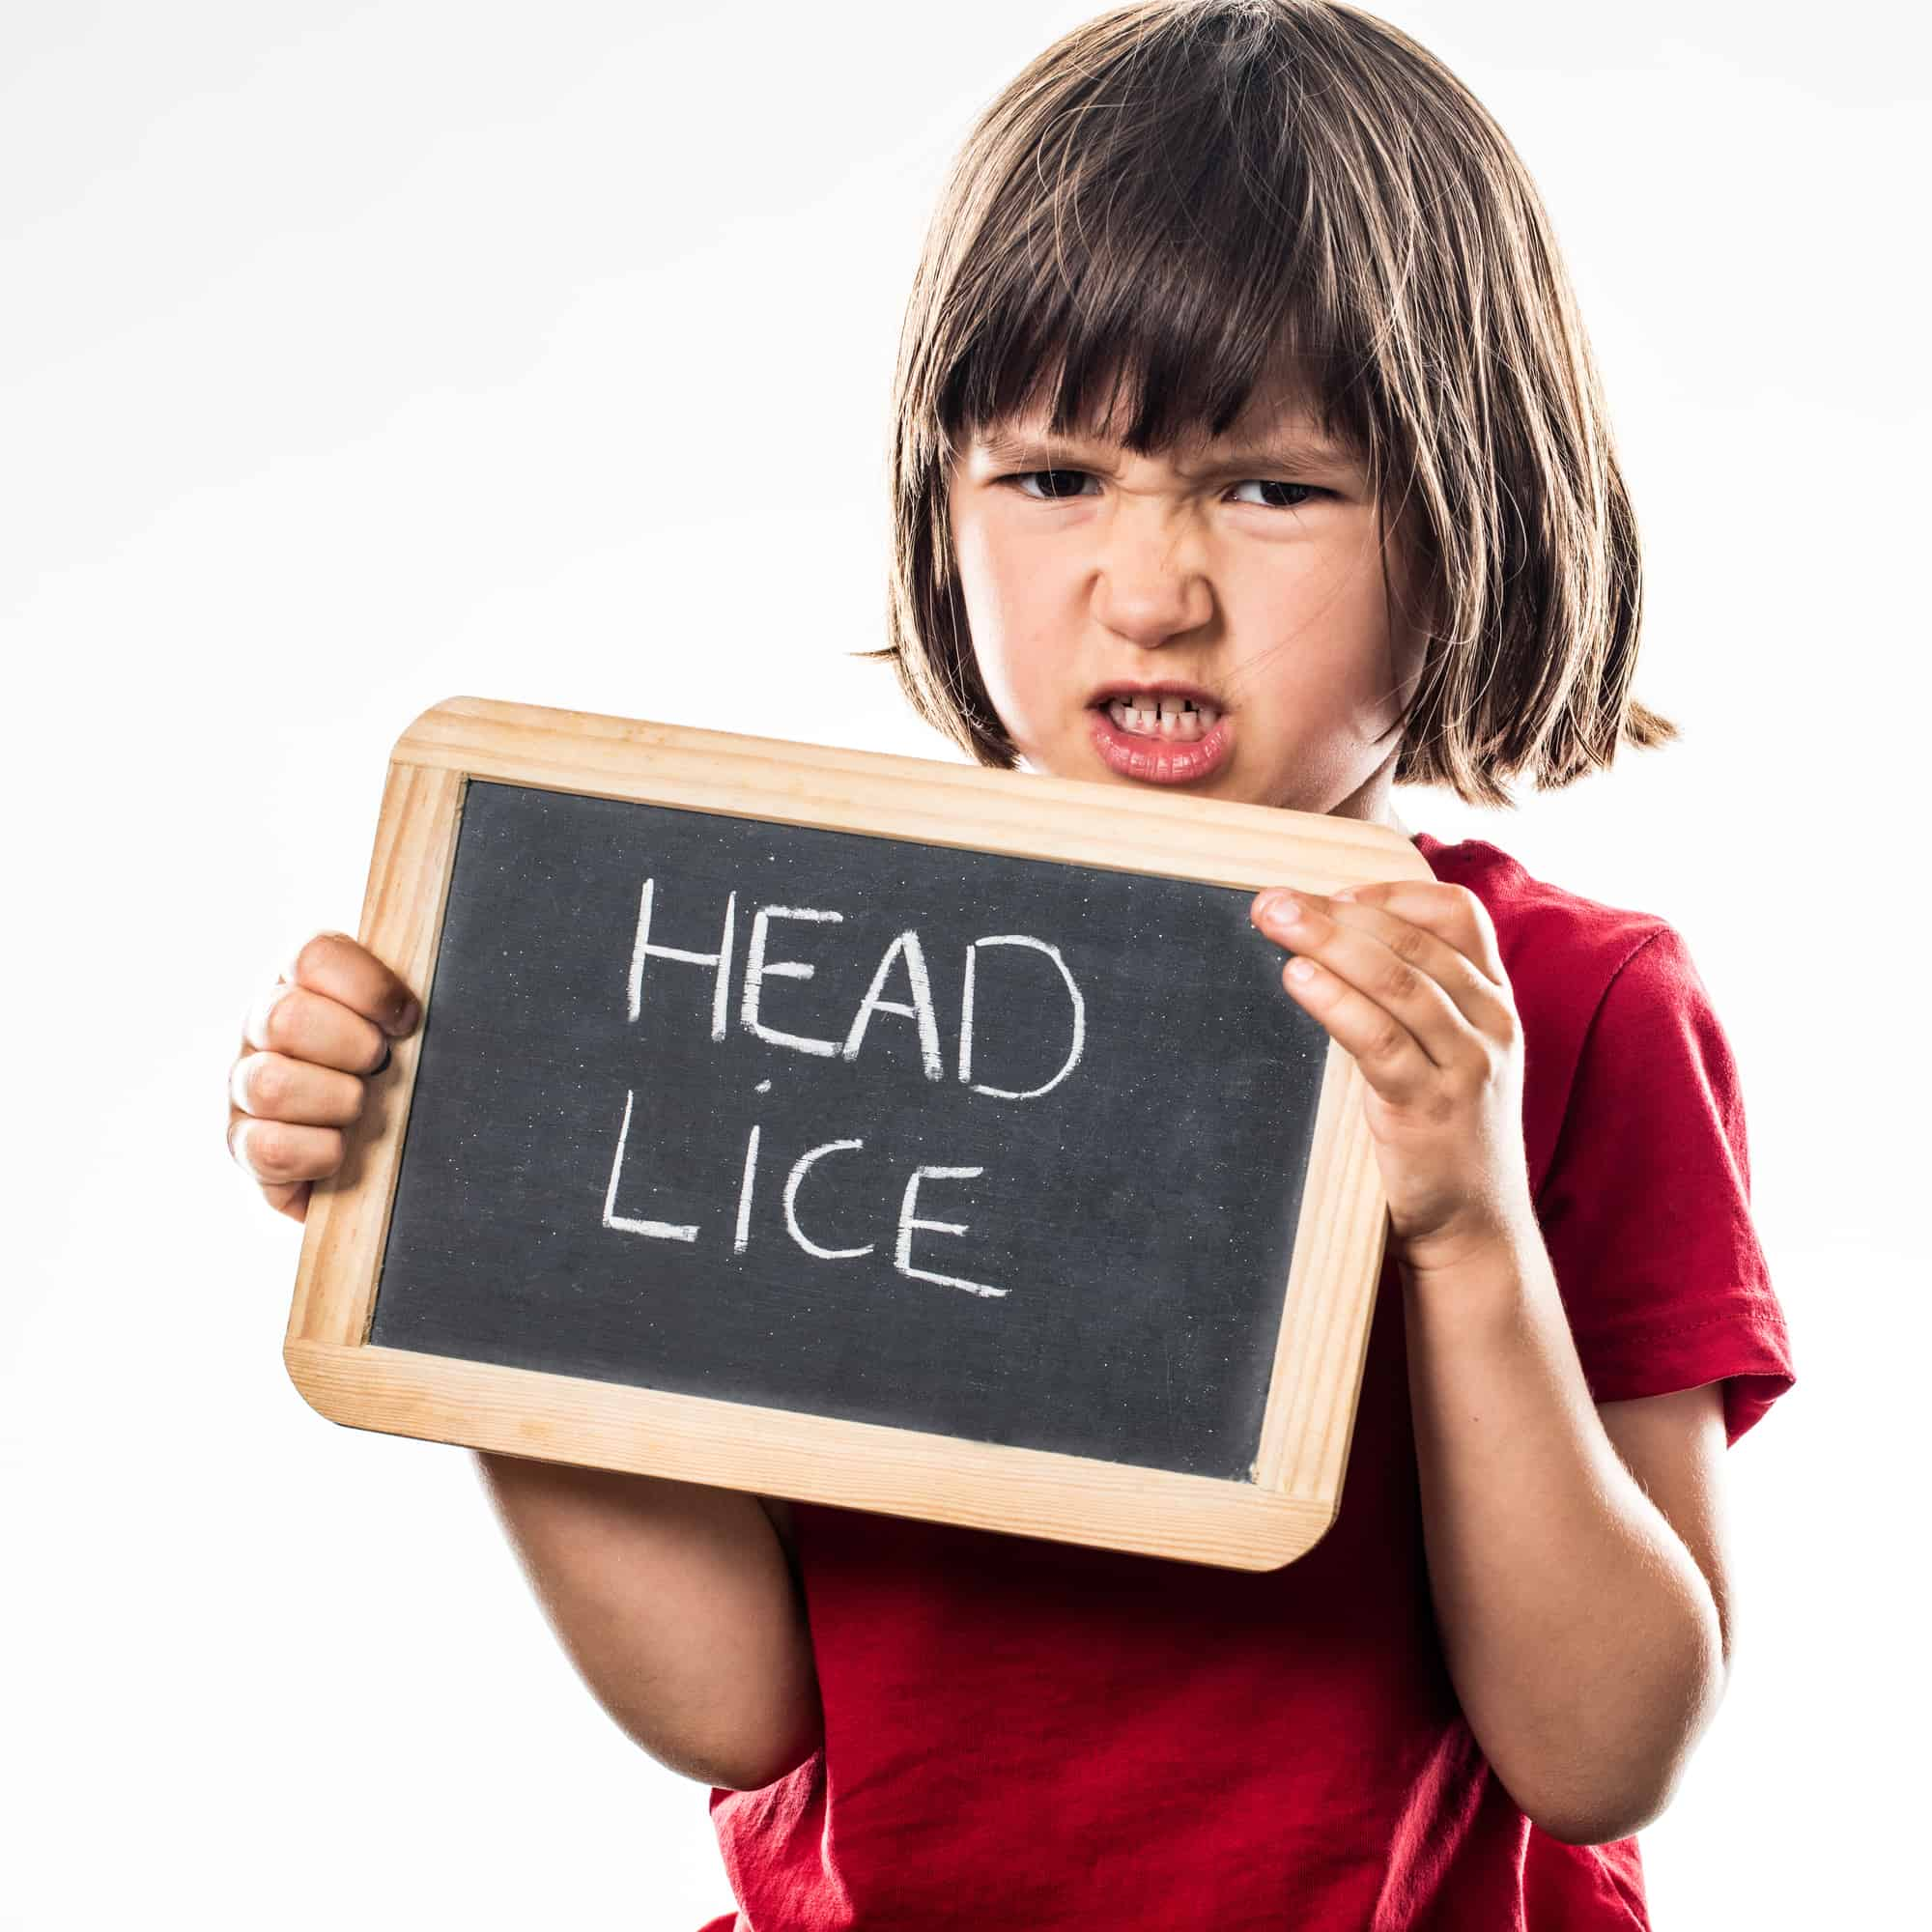 angry young child holding a school slate as a protection shield against head lice